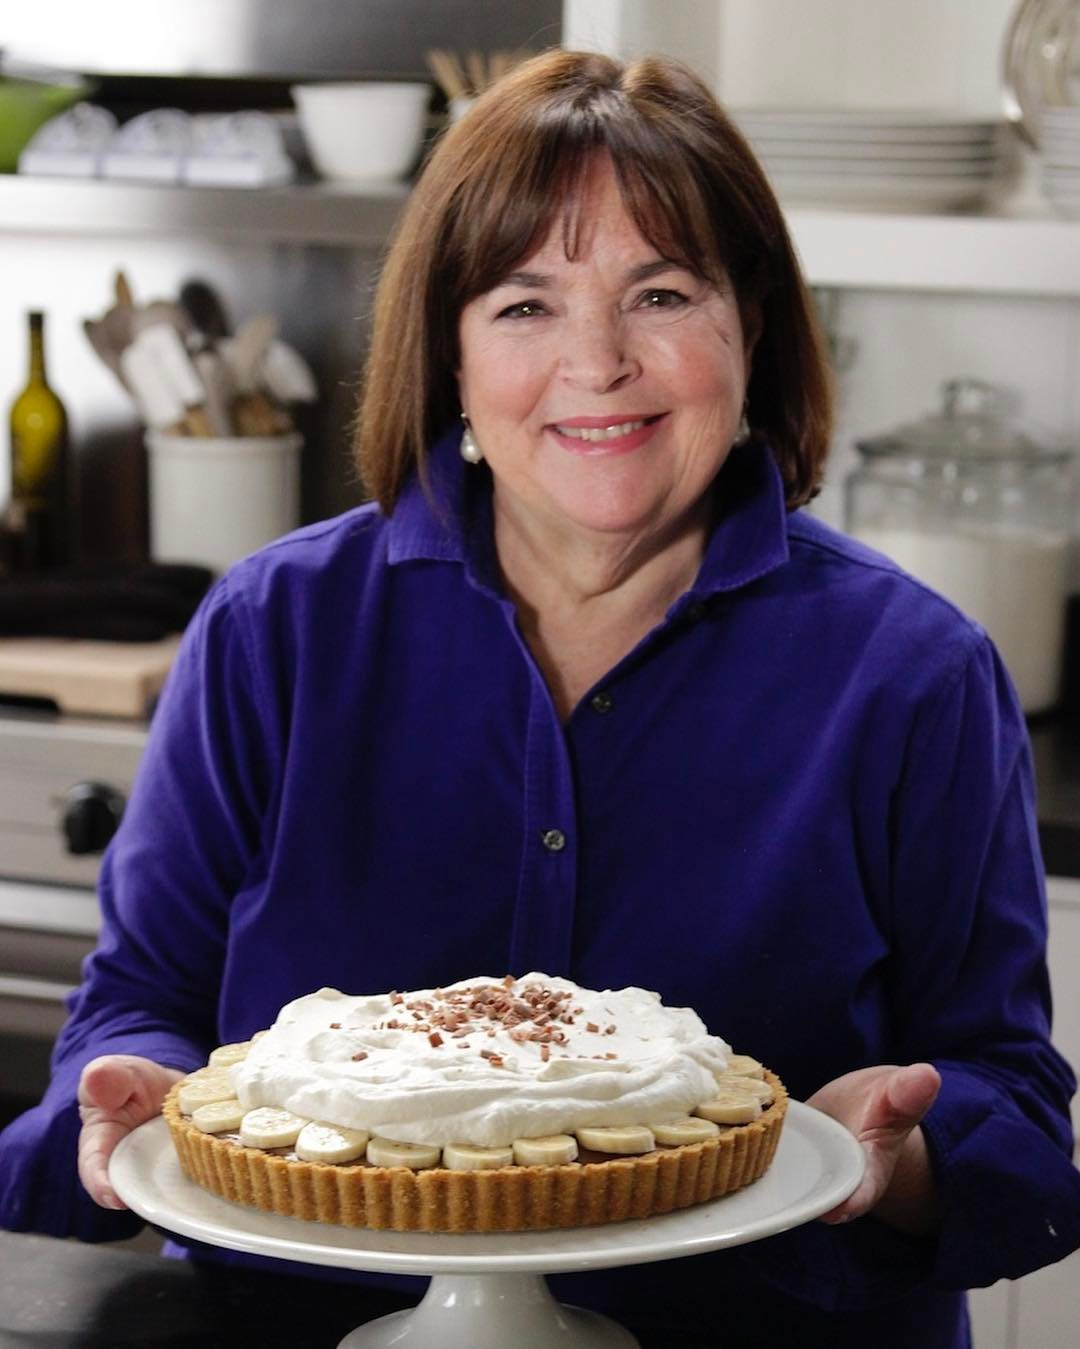 Barefoot Contessa Ina Garten's 10 Best Baking Hacks